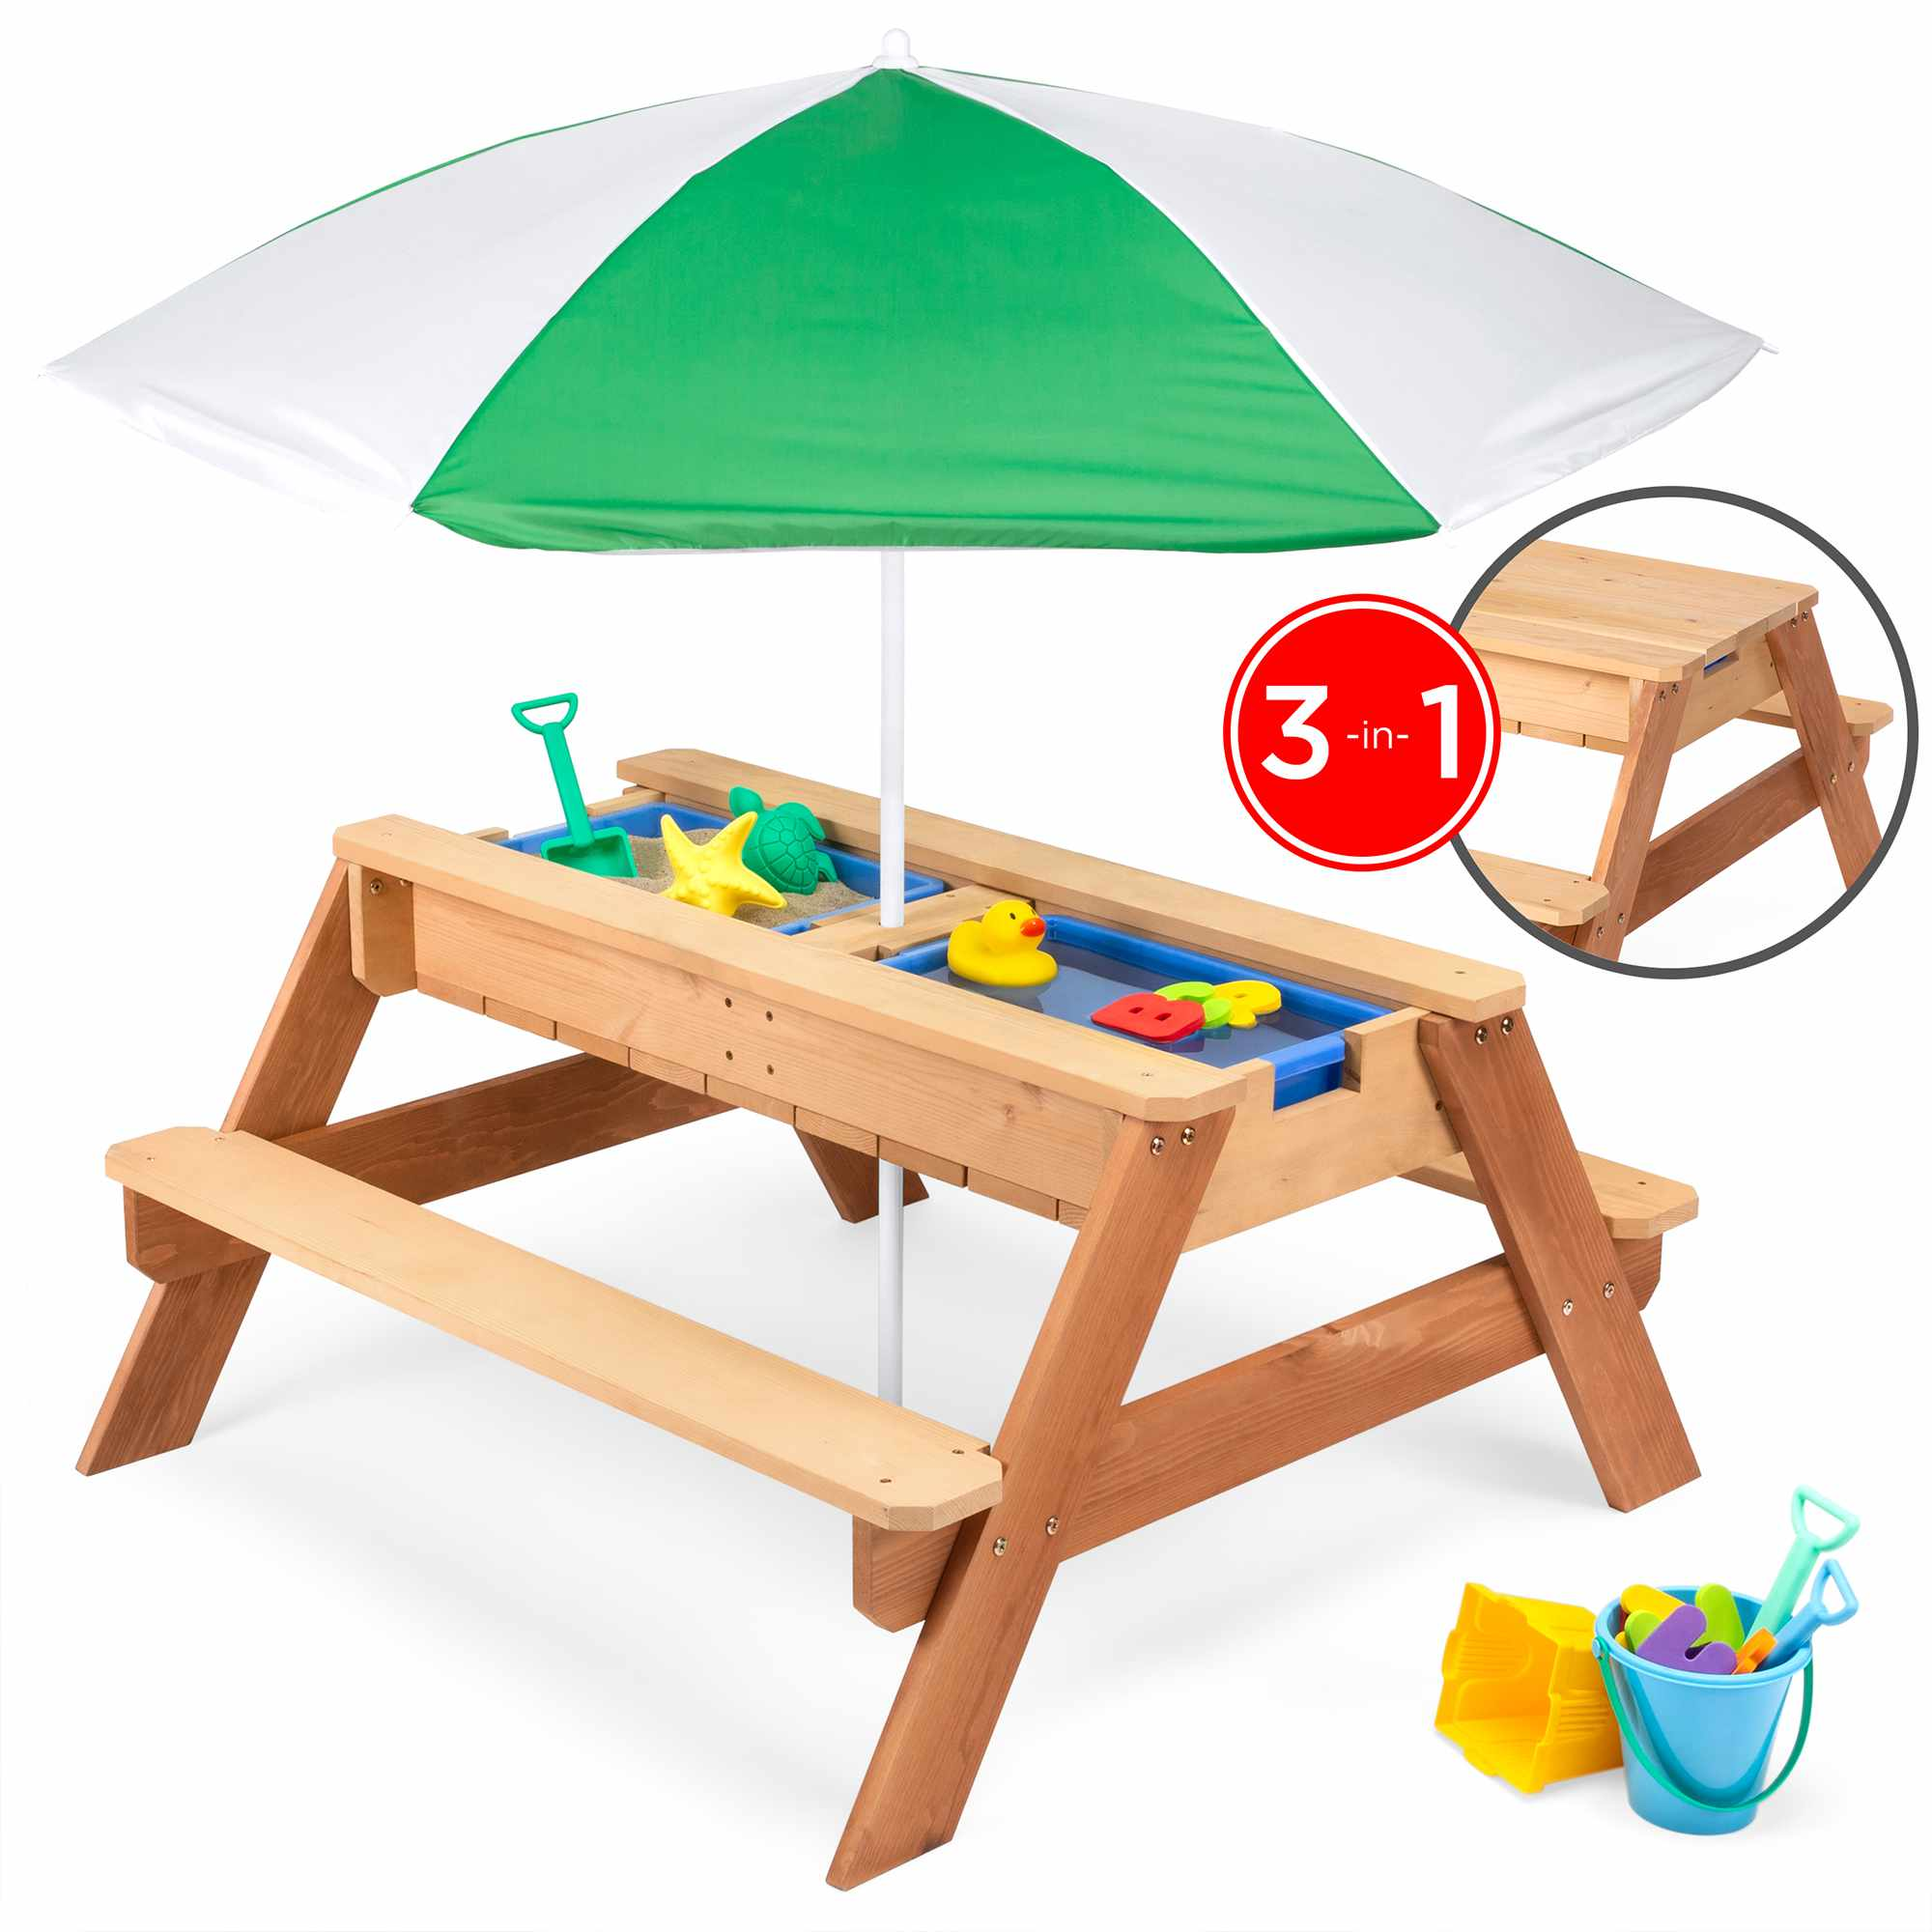 Best Choice Products Kids 3-in-1 Outdoor Convertible Wood Activity Sand & Water Picnic Table w/ Umbrella